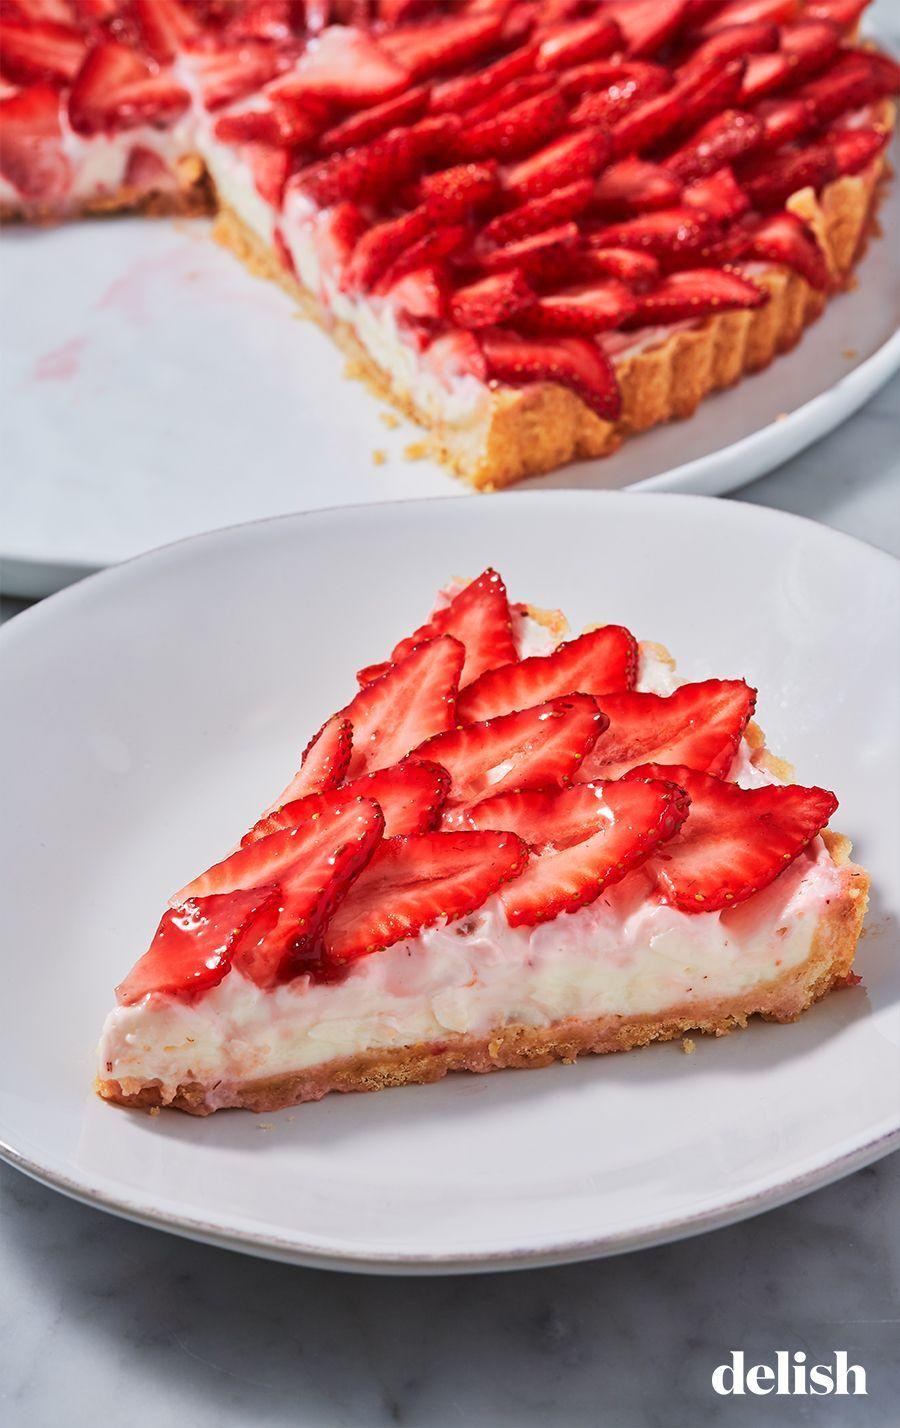 """<p>Truly a thing of beauty.</p><p>Get the recipe from <a href=""""https://www.delish.com/cooking/recipe-ideas/a26871609/strawberry-tart-recipe/"""" rel=""""nofollow noopener"""" target=""""_blank"""" data-ylk=""""slk:Delish"""" class=""""link rapid-noclick-resp"""">Delish</a>. </p>"""